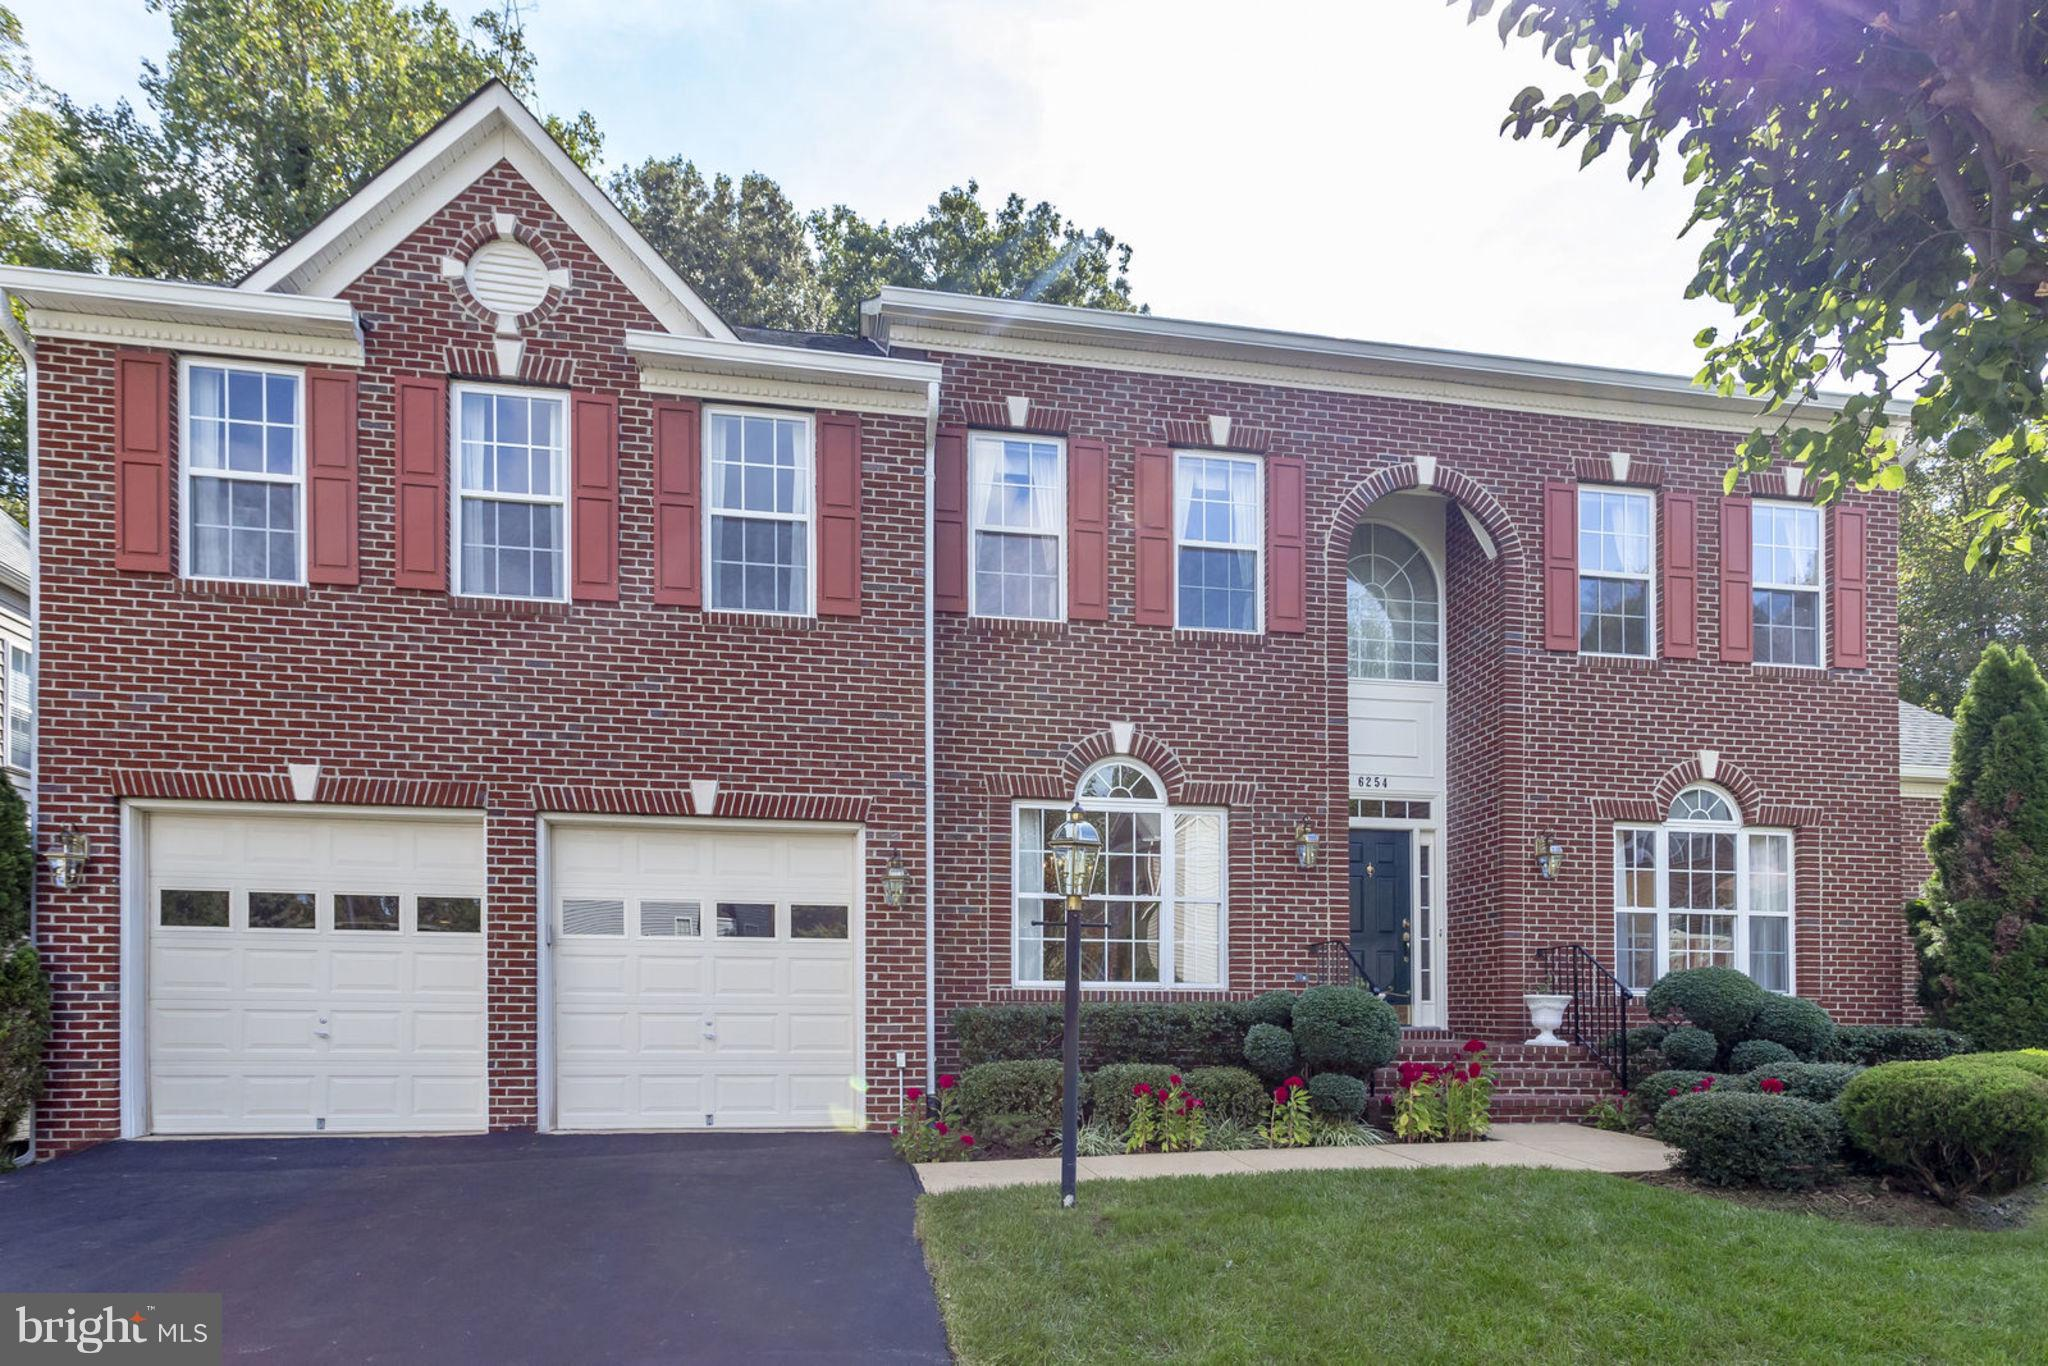 Stunning VanMetre Colonial nestled in a quiet cul-de-sac behind W. Springfield HS! This 6100 sq. ft. beauty boasts an incredible open floor plan, soaring ceilings, updated kitchen, hardwoods throughout Main Lvl, skylights, too many extras to list.  Master suite w/sep. sitting area w/gas fireplace! Large private deck that backs to woods.  Huge finished walkout basement with 2 bedrooms, full bath.